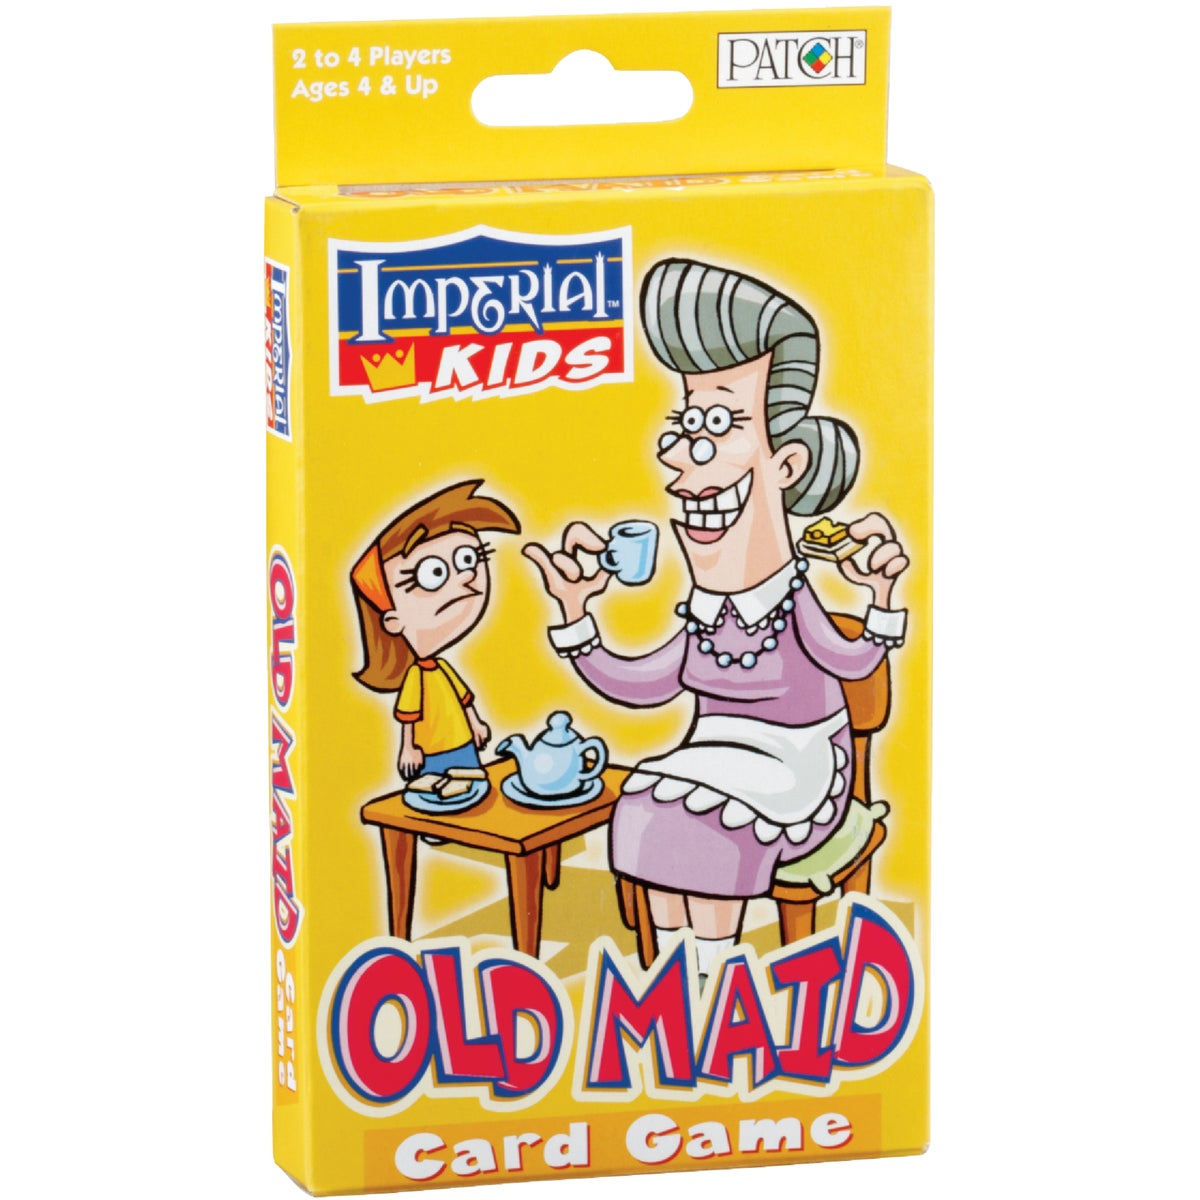 OLD MAID CARD GAME - 1464 by Patch Products